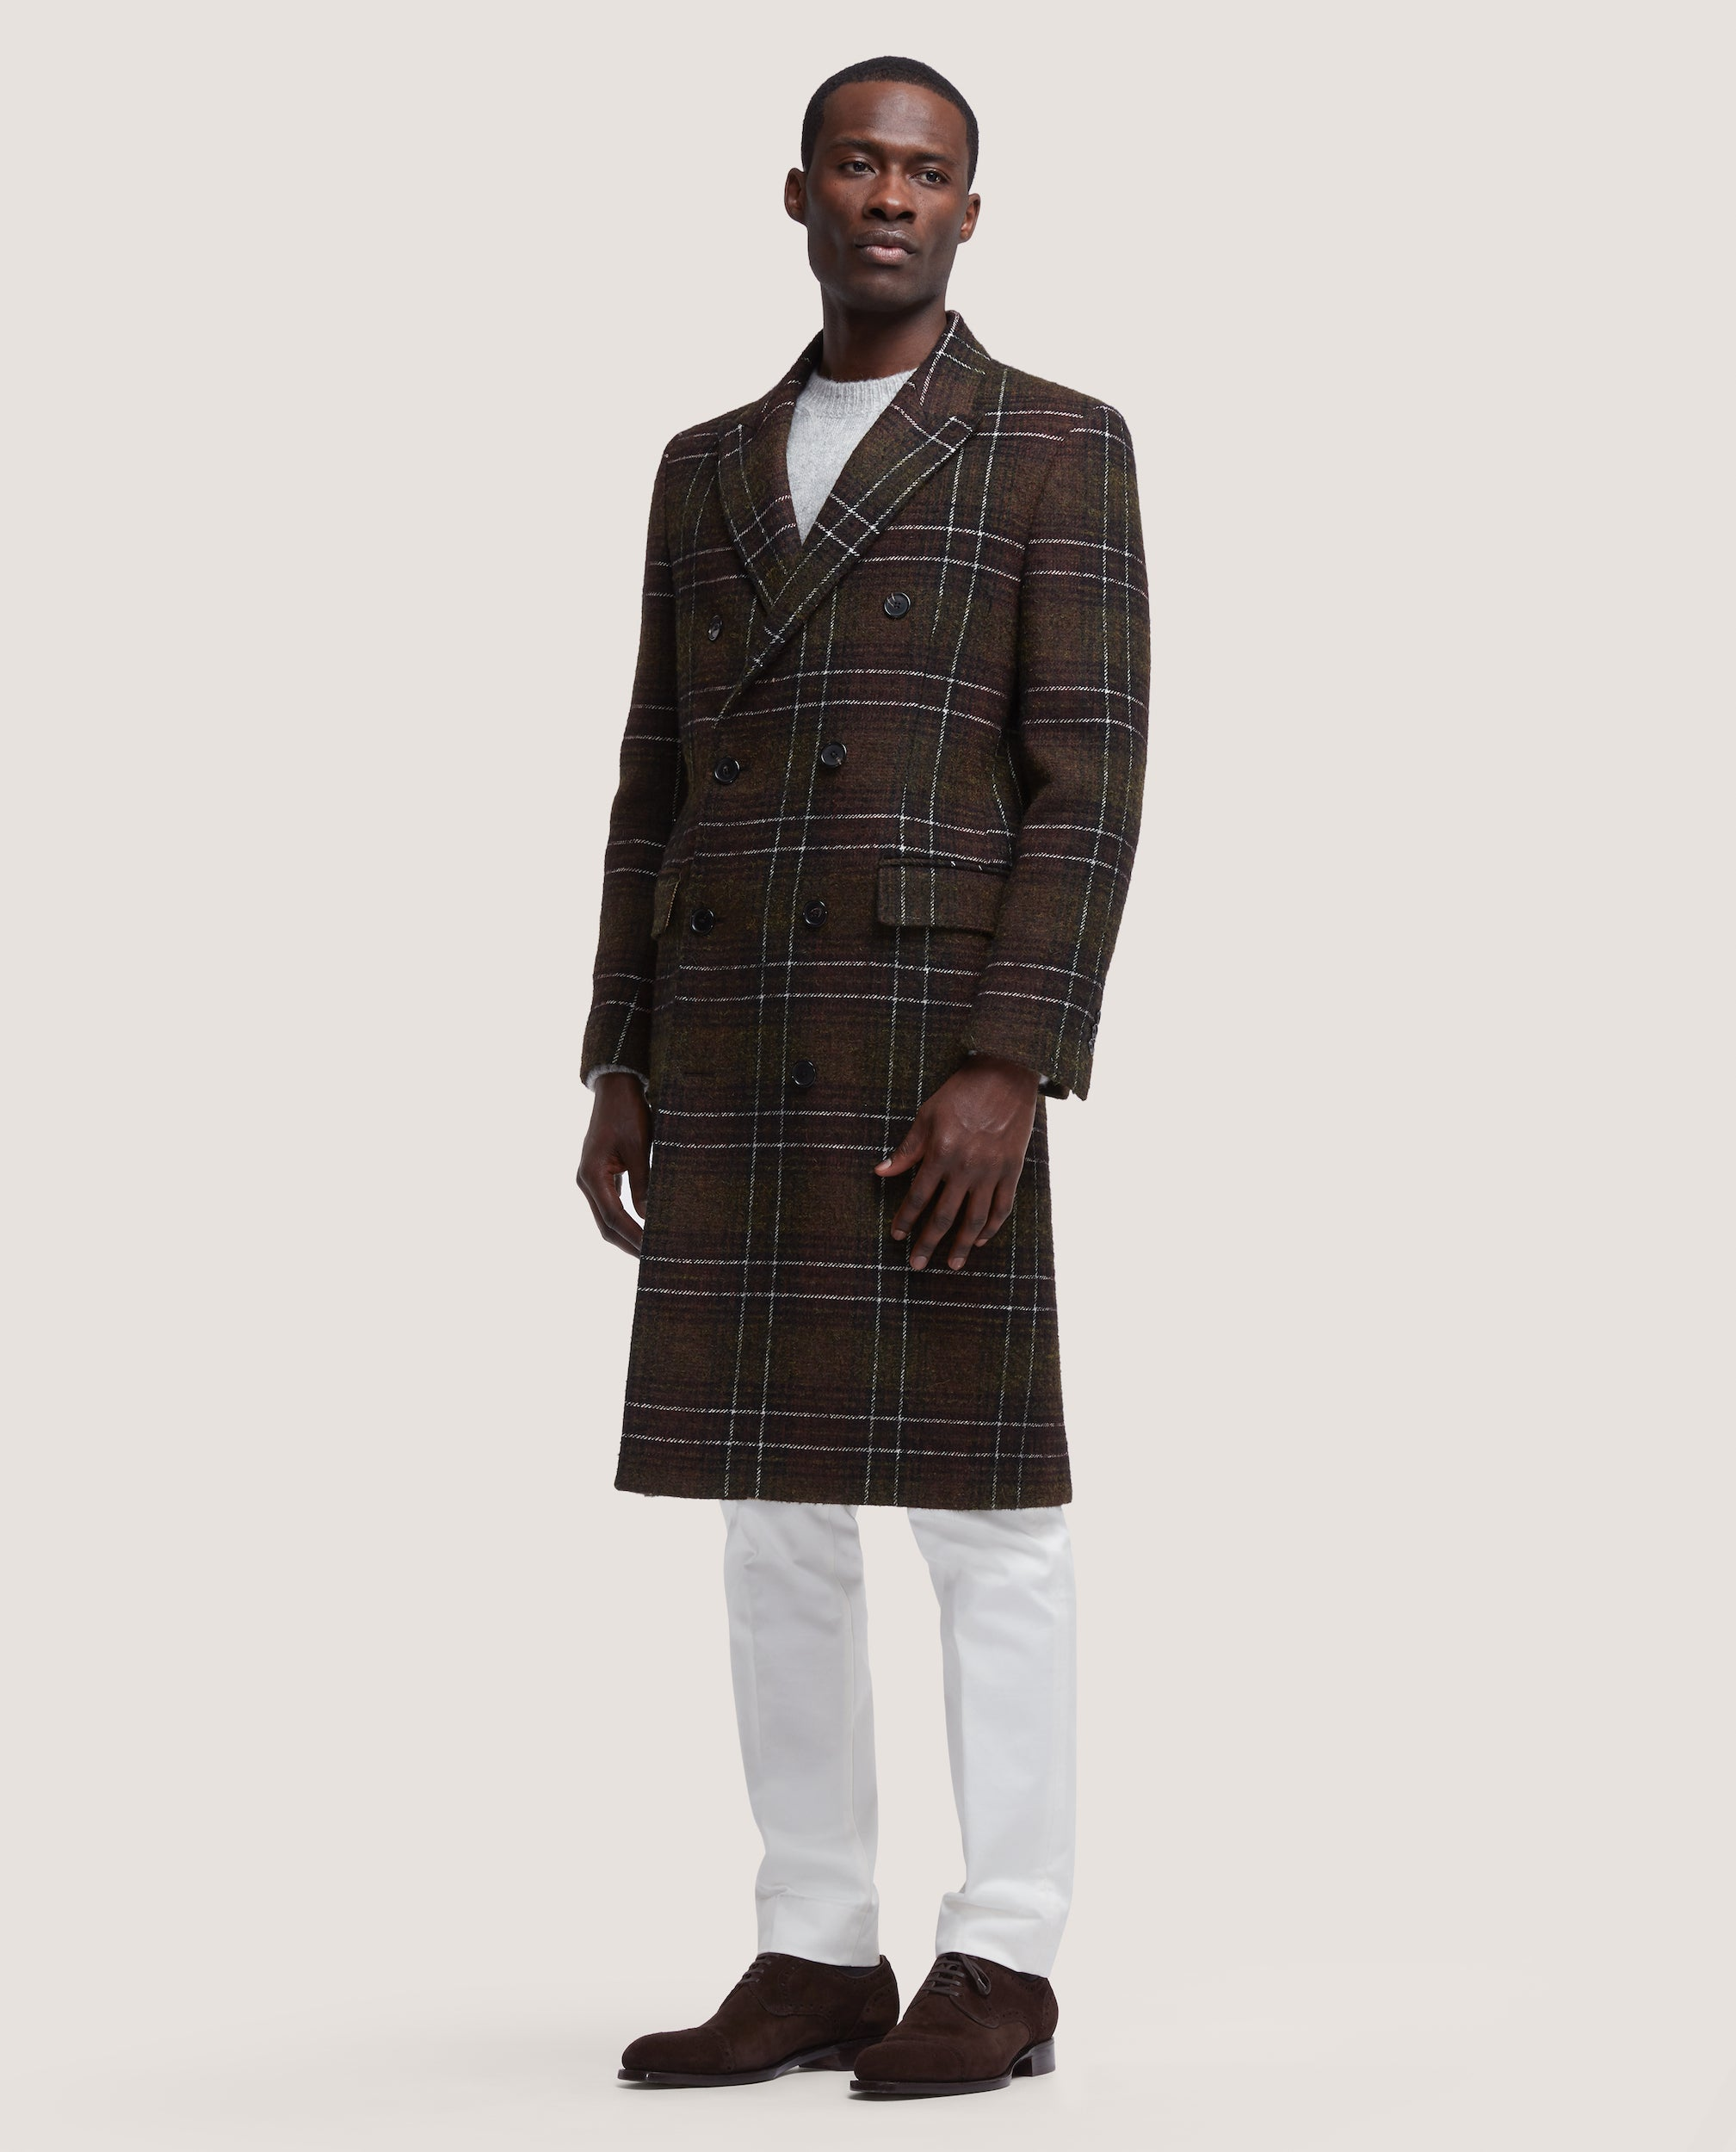 ALAIN DOUBLE BREASTED WOOL OVERCOAT SALLE PRIVÉE